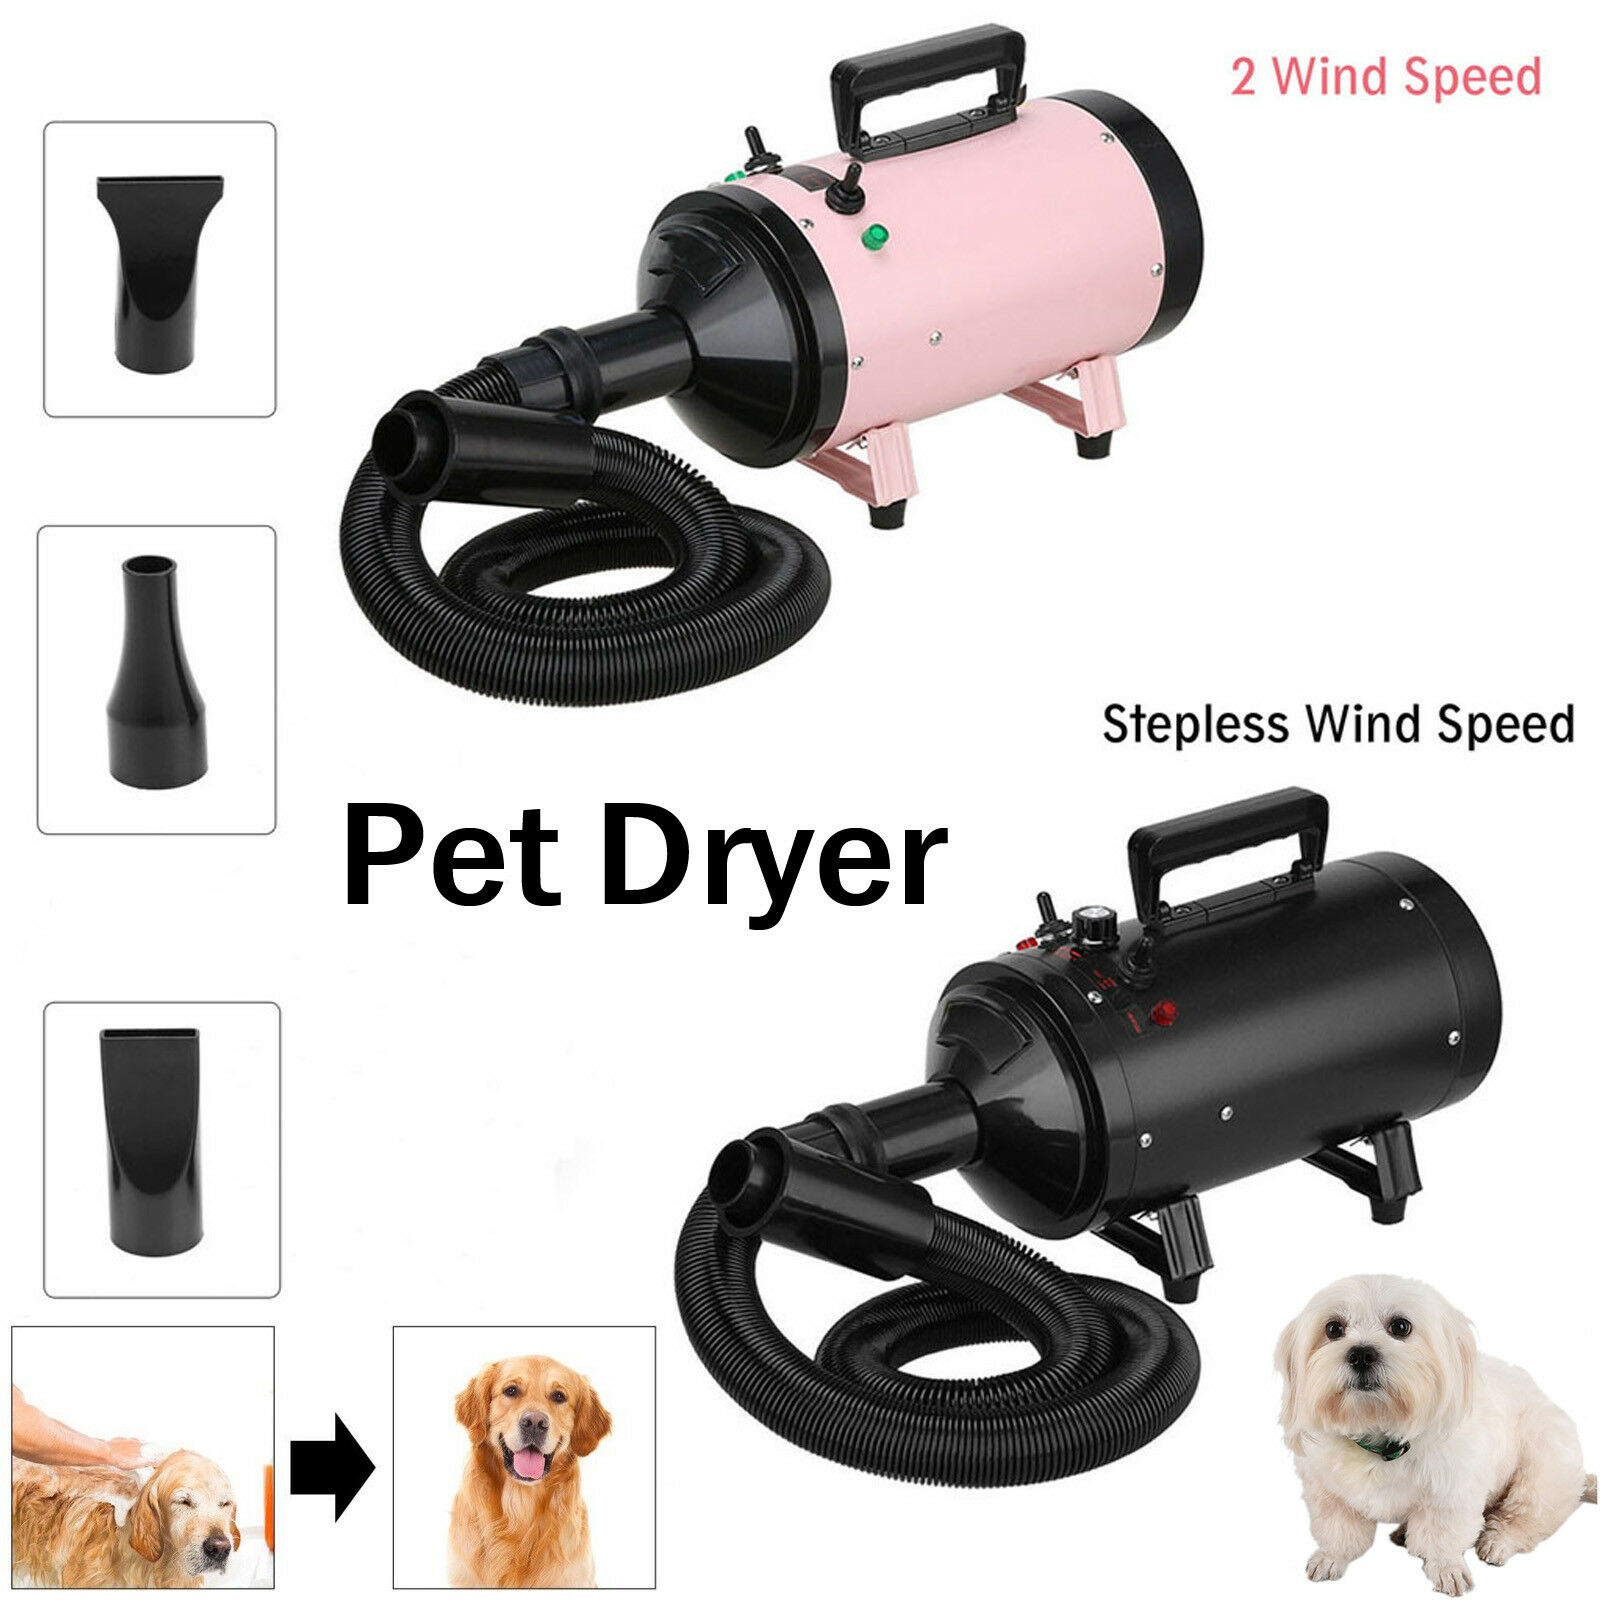 2800W Dog Cat Pet Grooming Hair Dryer Hairdryer Blaster Low Noise Blower Heater